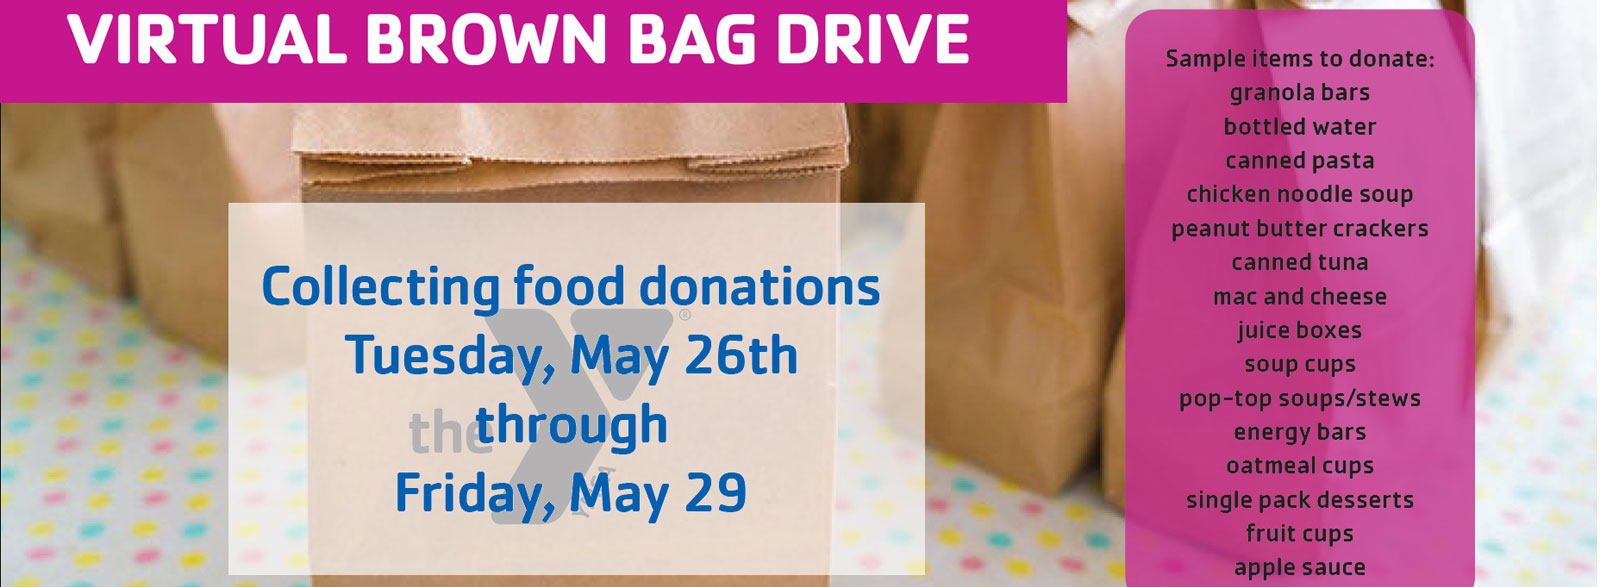 virtual brown bag drive YMCA Greenfield May 26th-29th